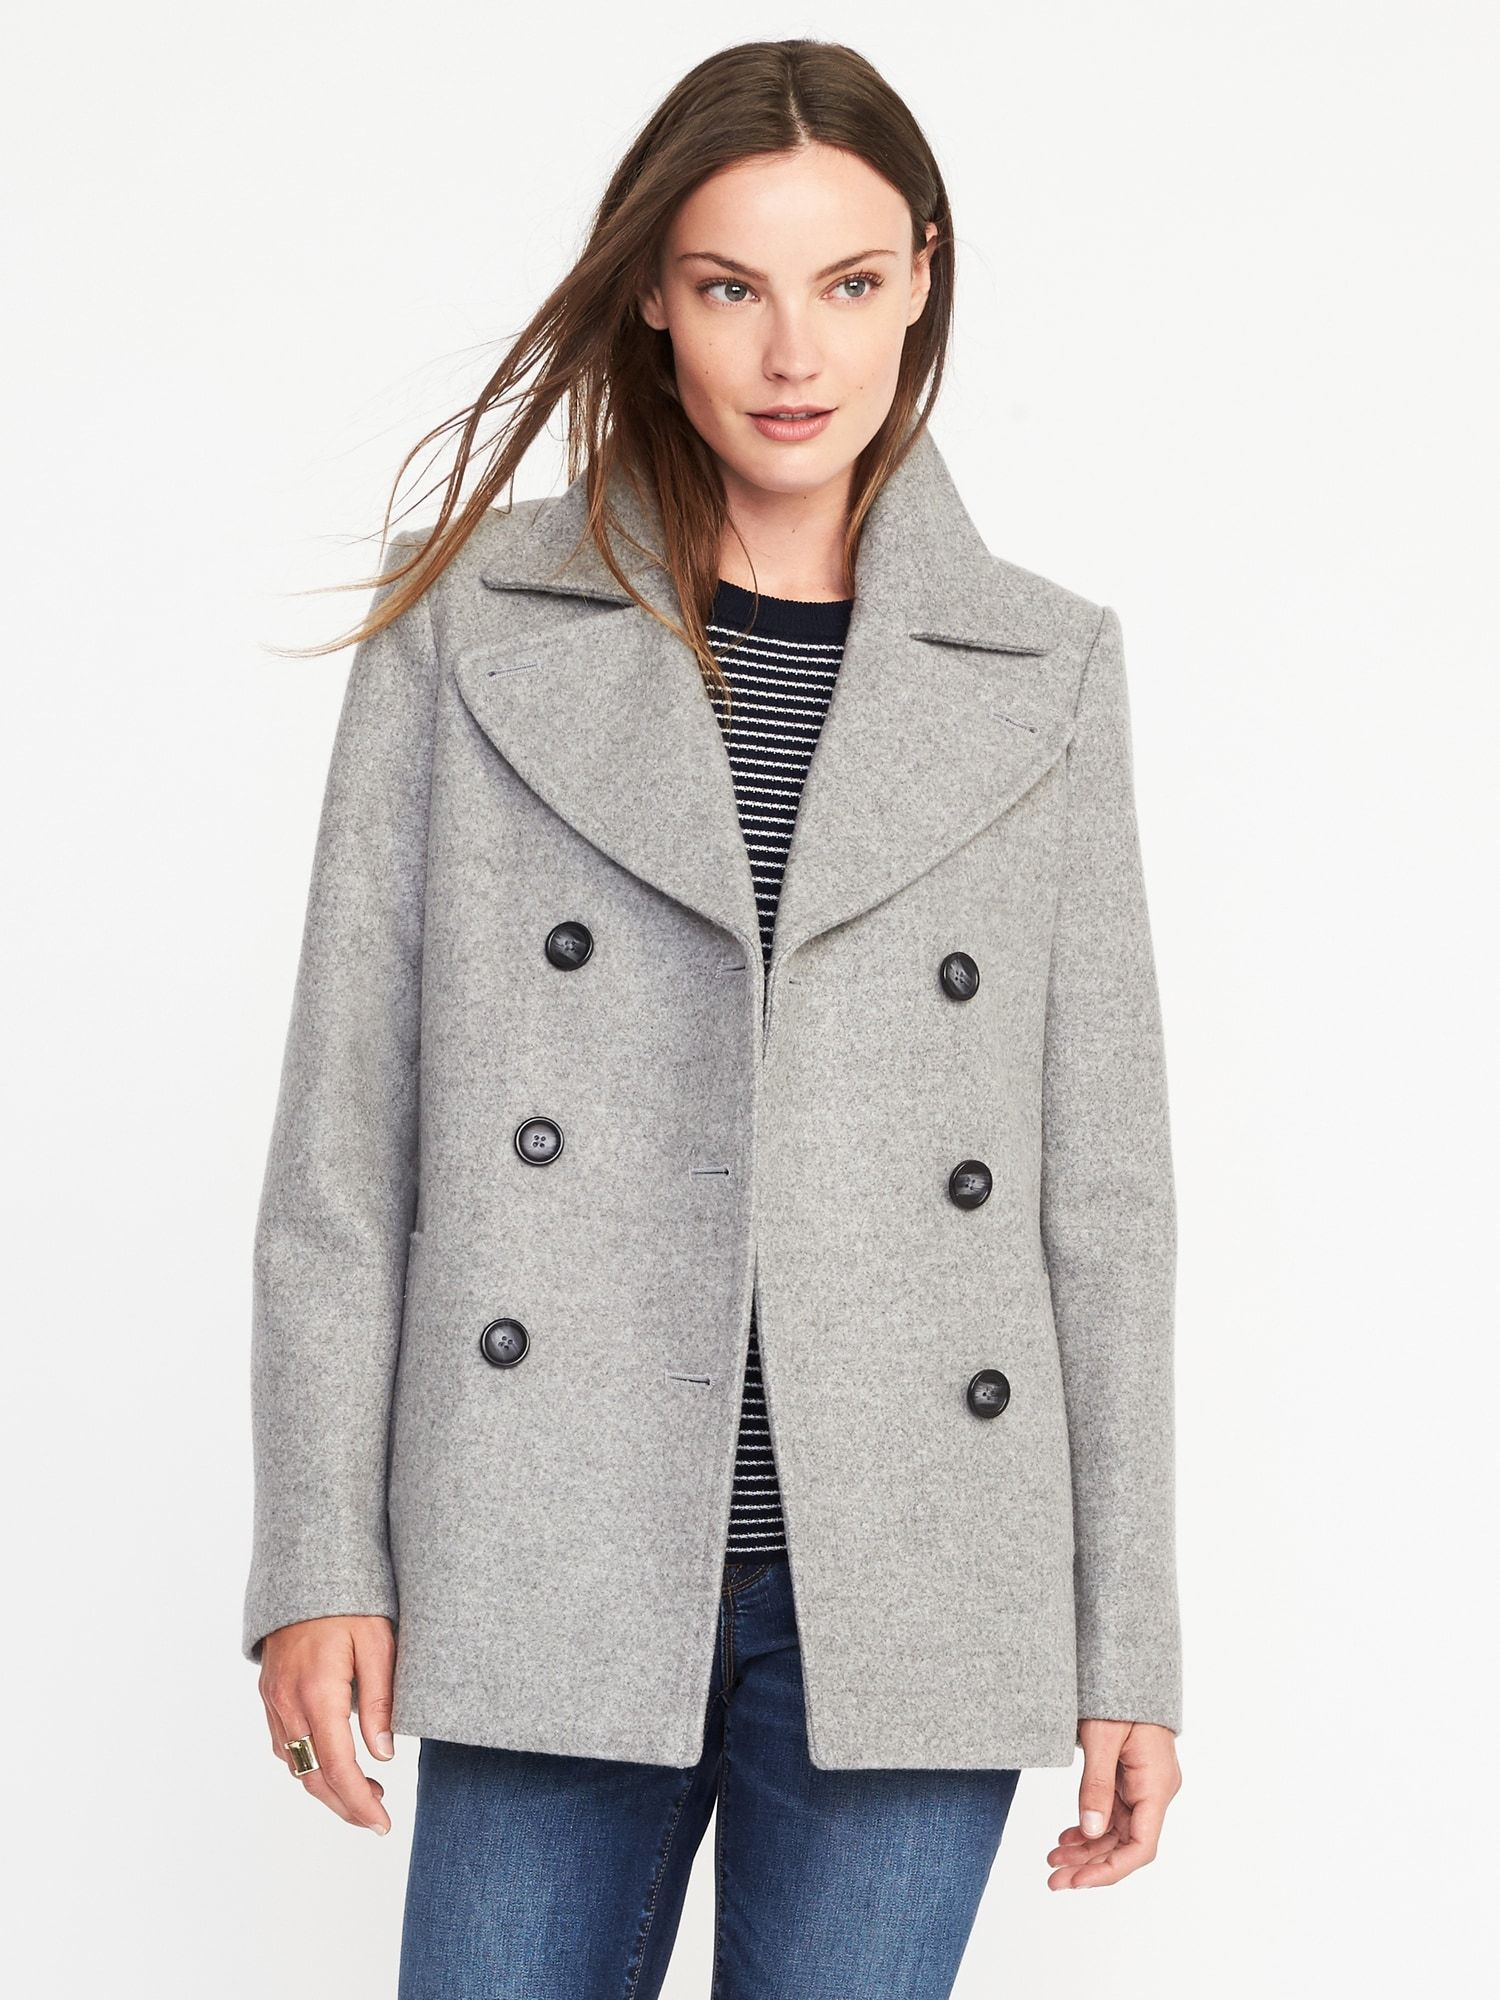 6454aa5775b9 Size Small in Gray. Classic Wool-Blend Peacoat for Women